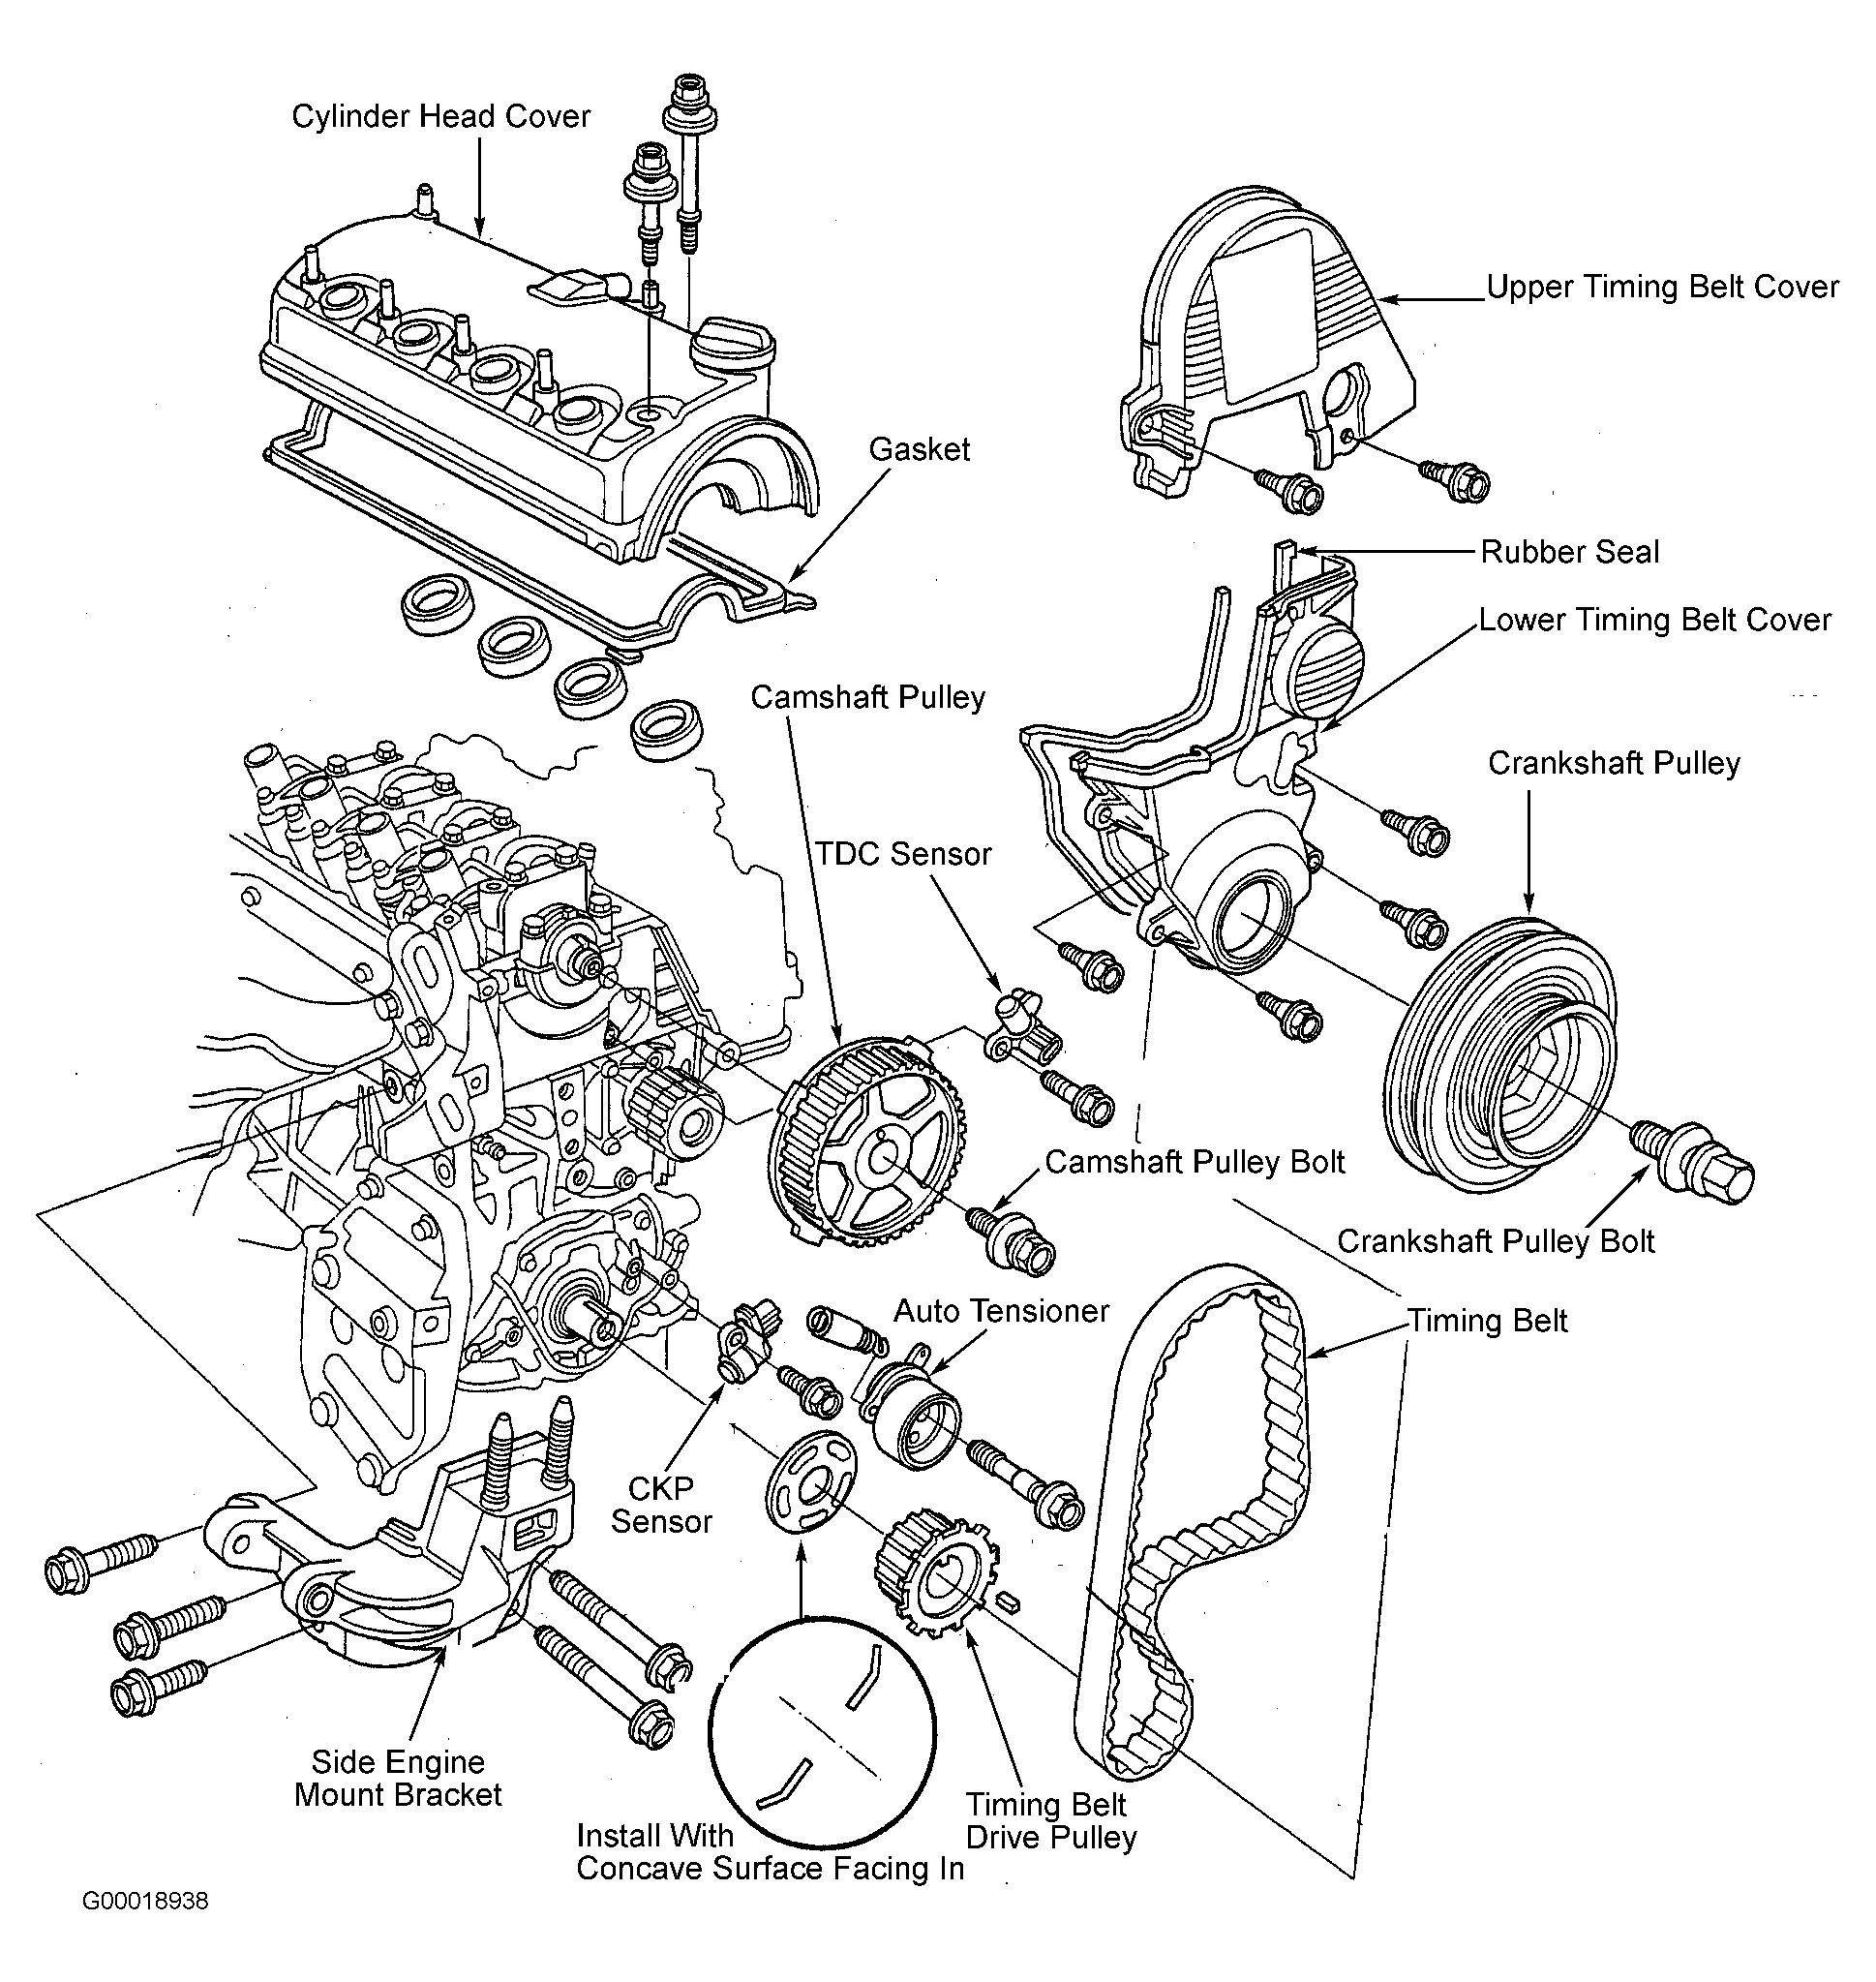 06 honda civic parts diagram  u2022 wiring diagram for free